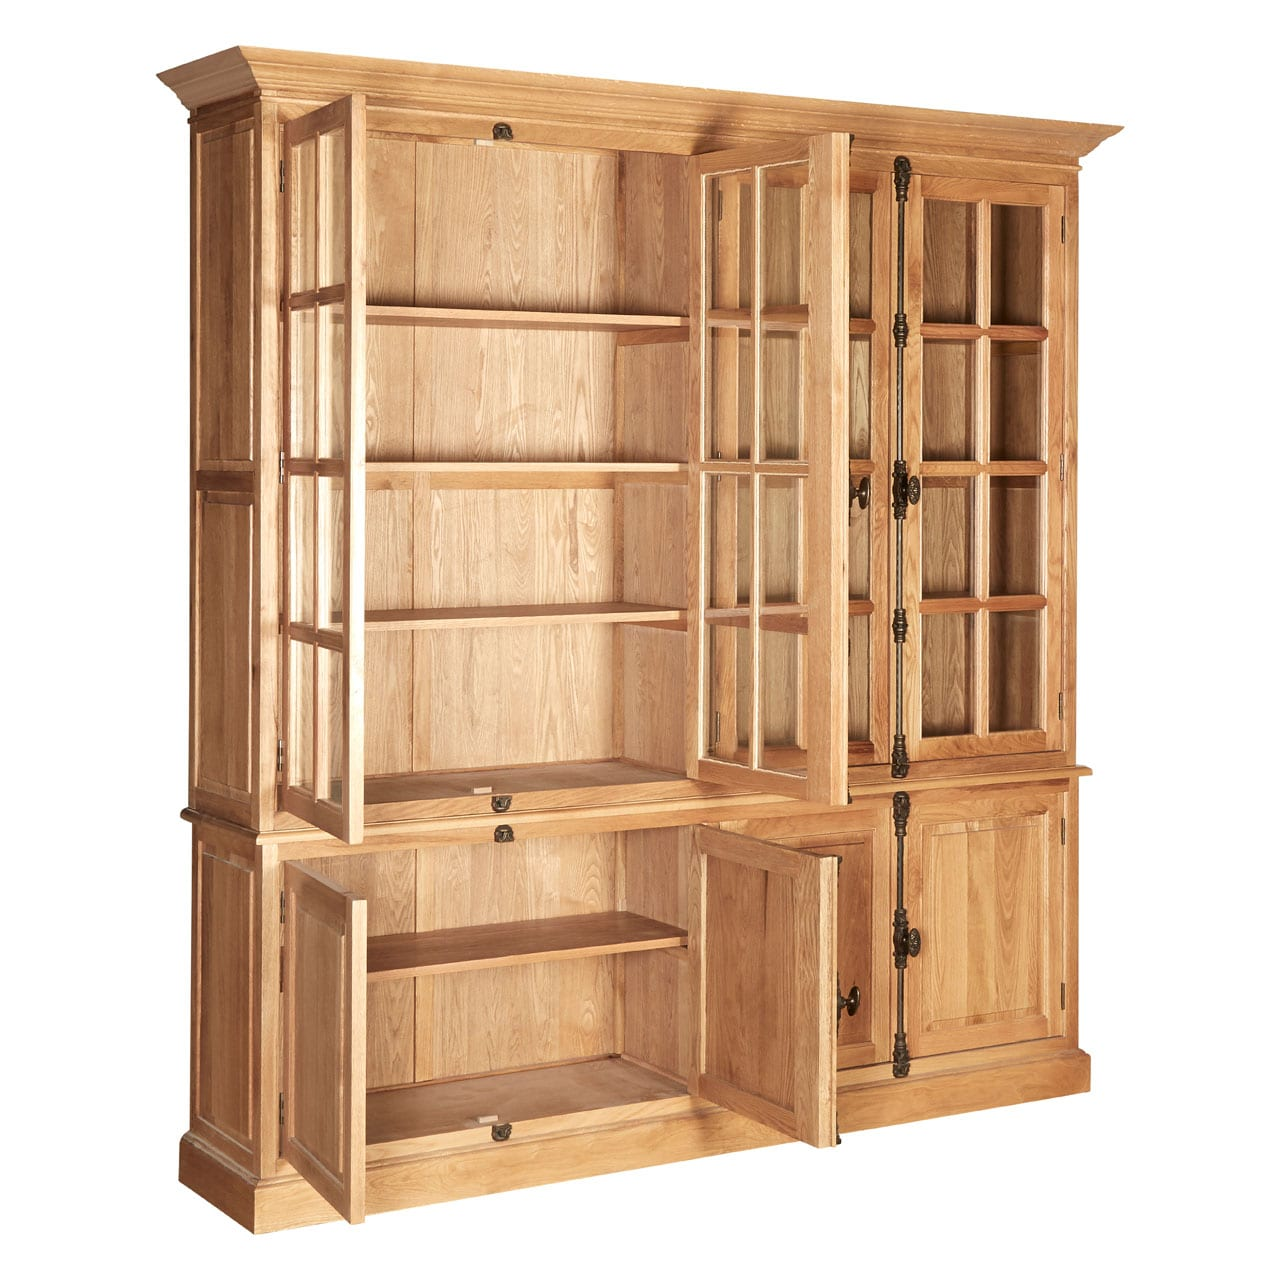 Rouen Cabinet With 6 Upper Shelves